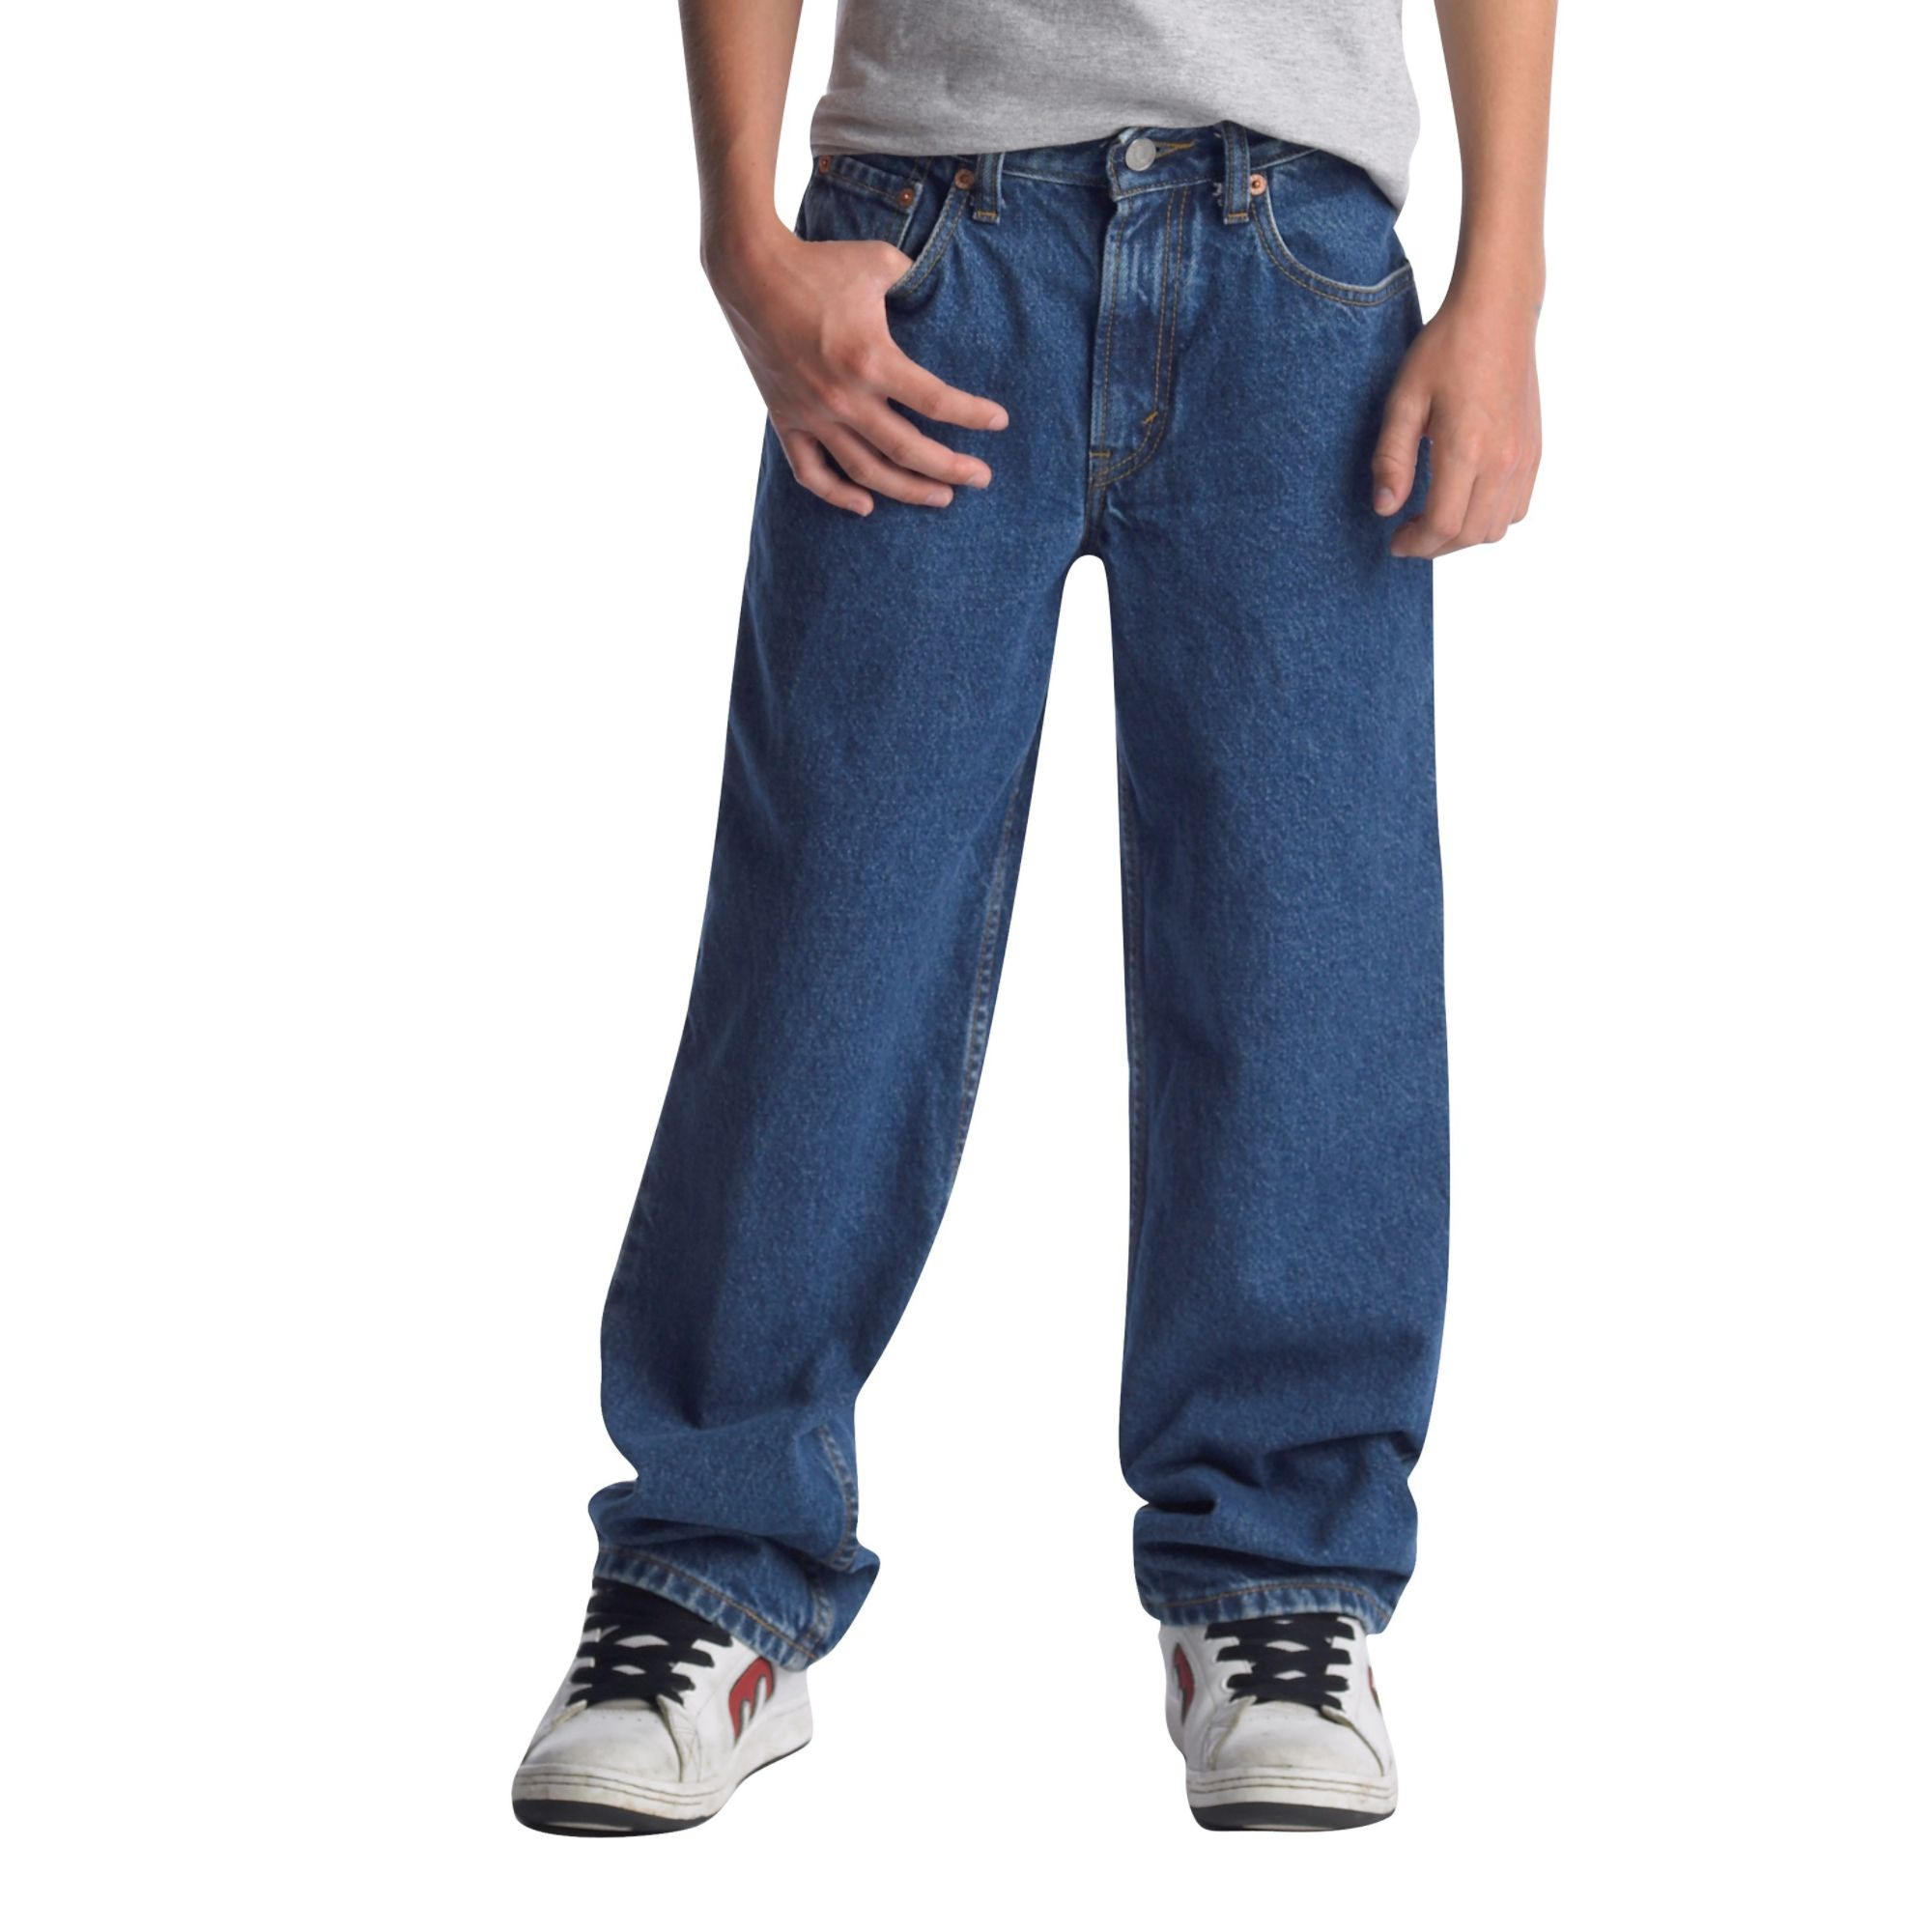 boys jeans leviu0027s 550 boyu0027s relaxed fit jeans xbnsvrg